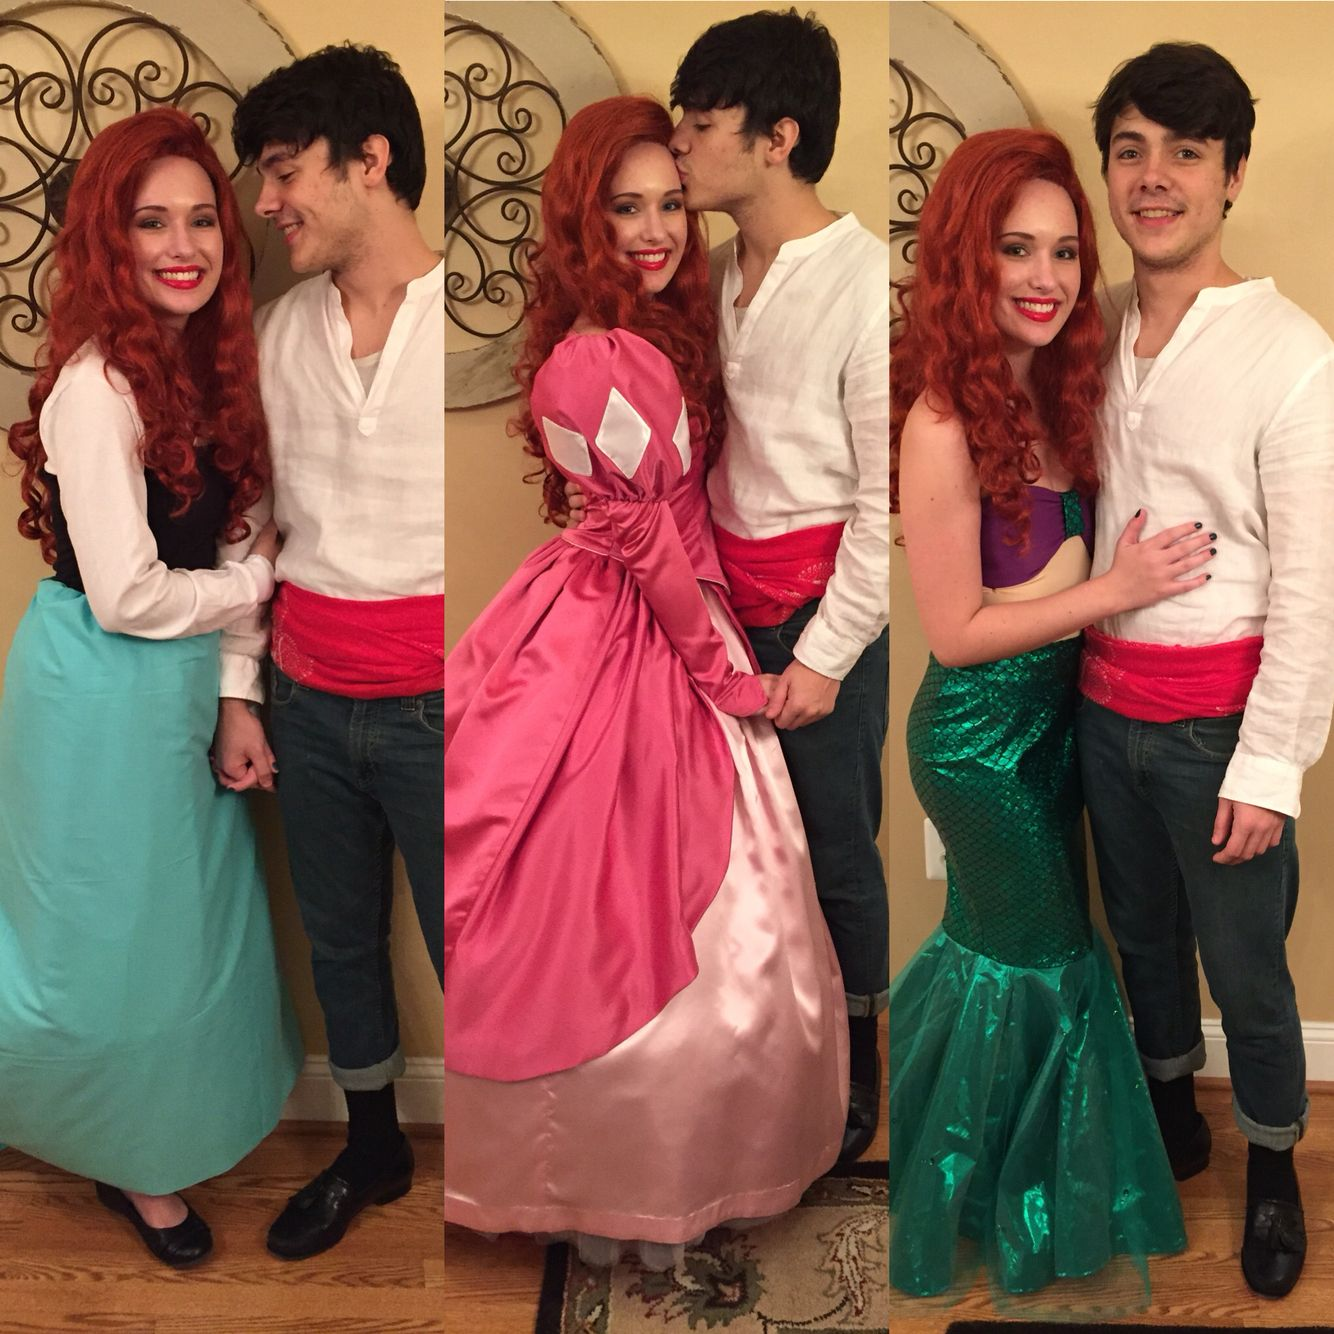 couples Halloween costumes Prince Eric and Princess Ariel the little mermaid Disney  sc 1 st  Pinterest & couples Halloween costumes Prince Eric and Princess Ariel the ...